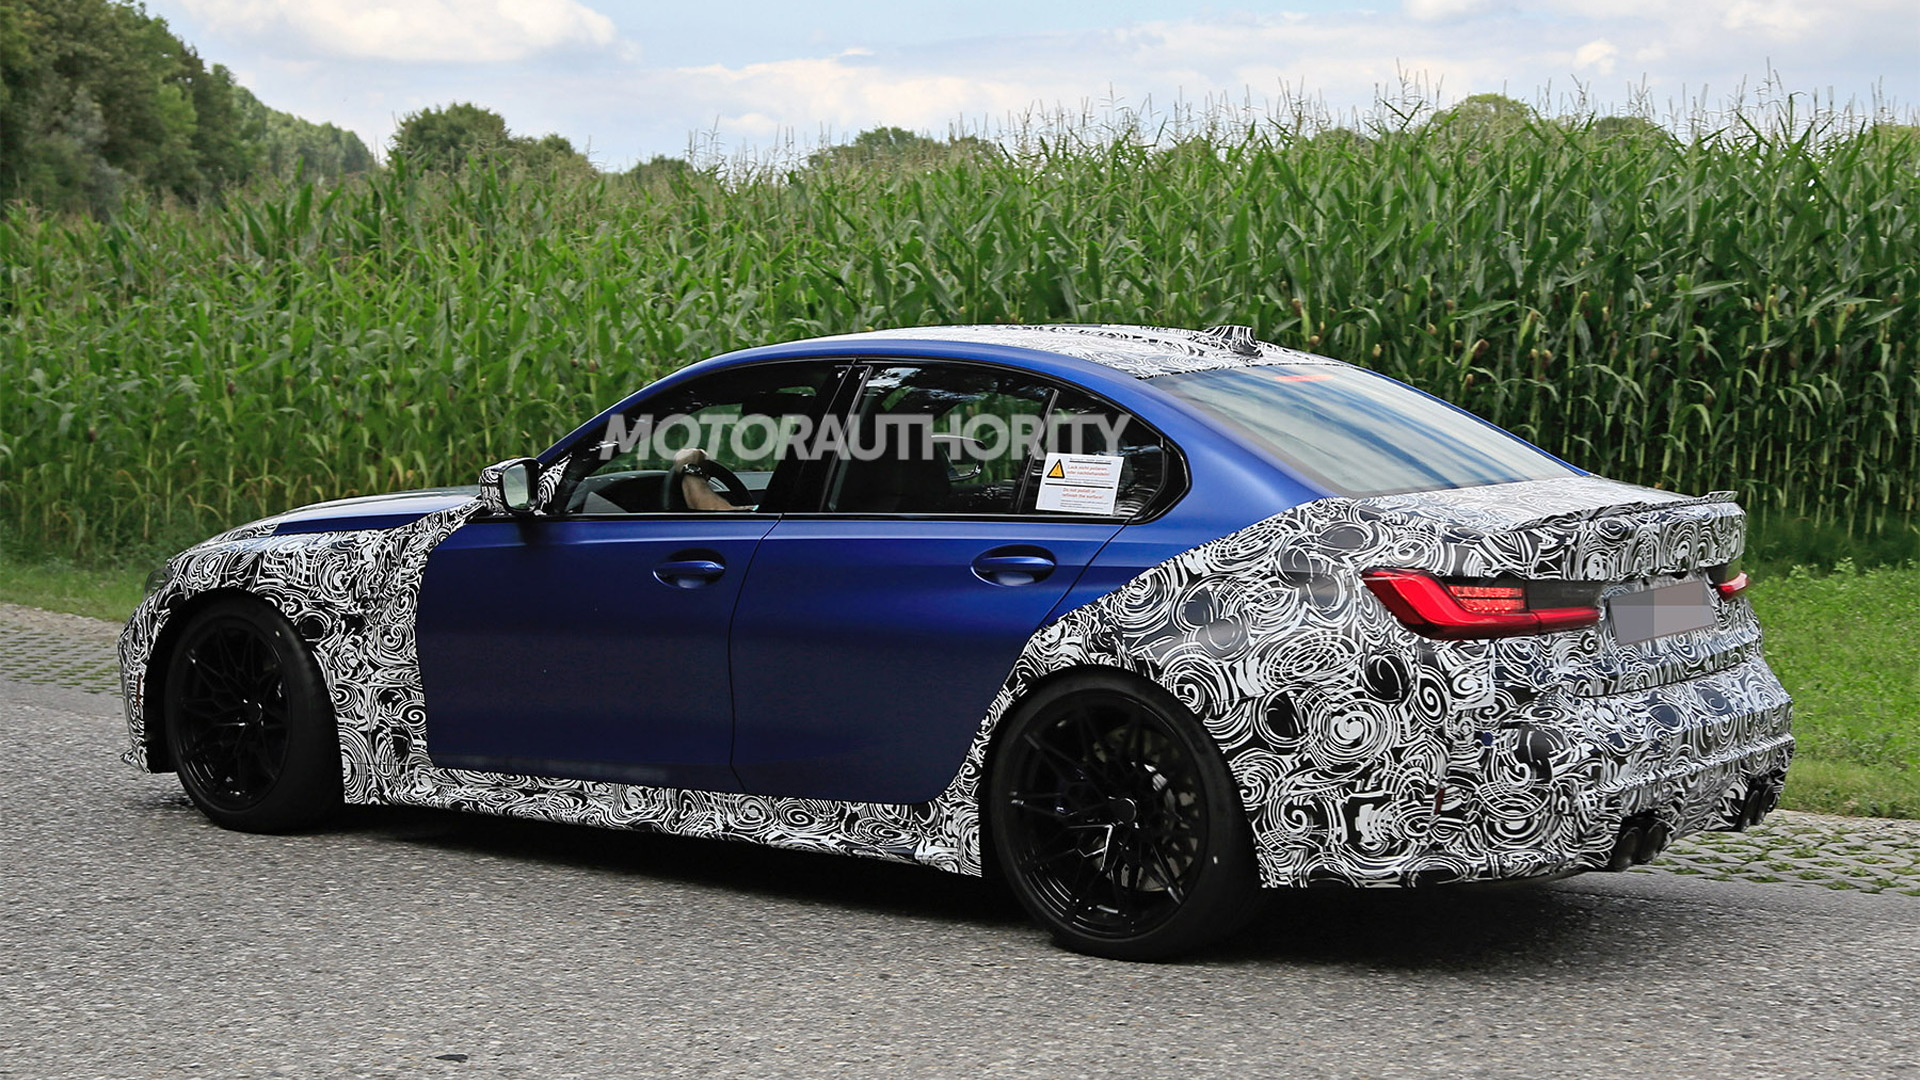 2021 BMW M3 spy shots - Photo credit: S. Baldauf/SB-Medien